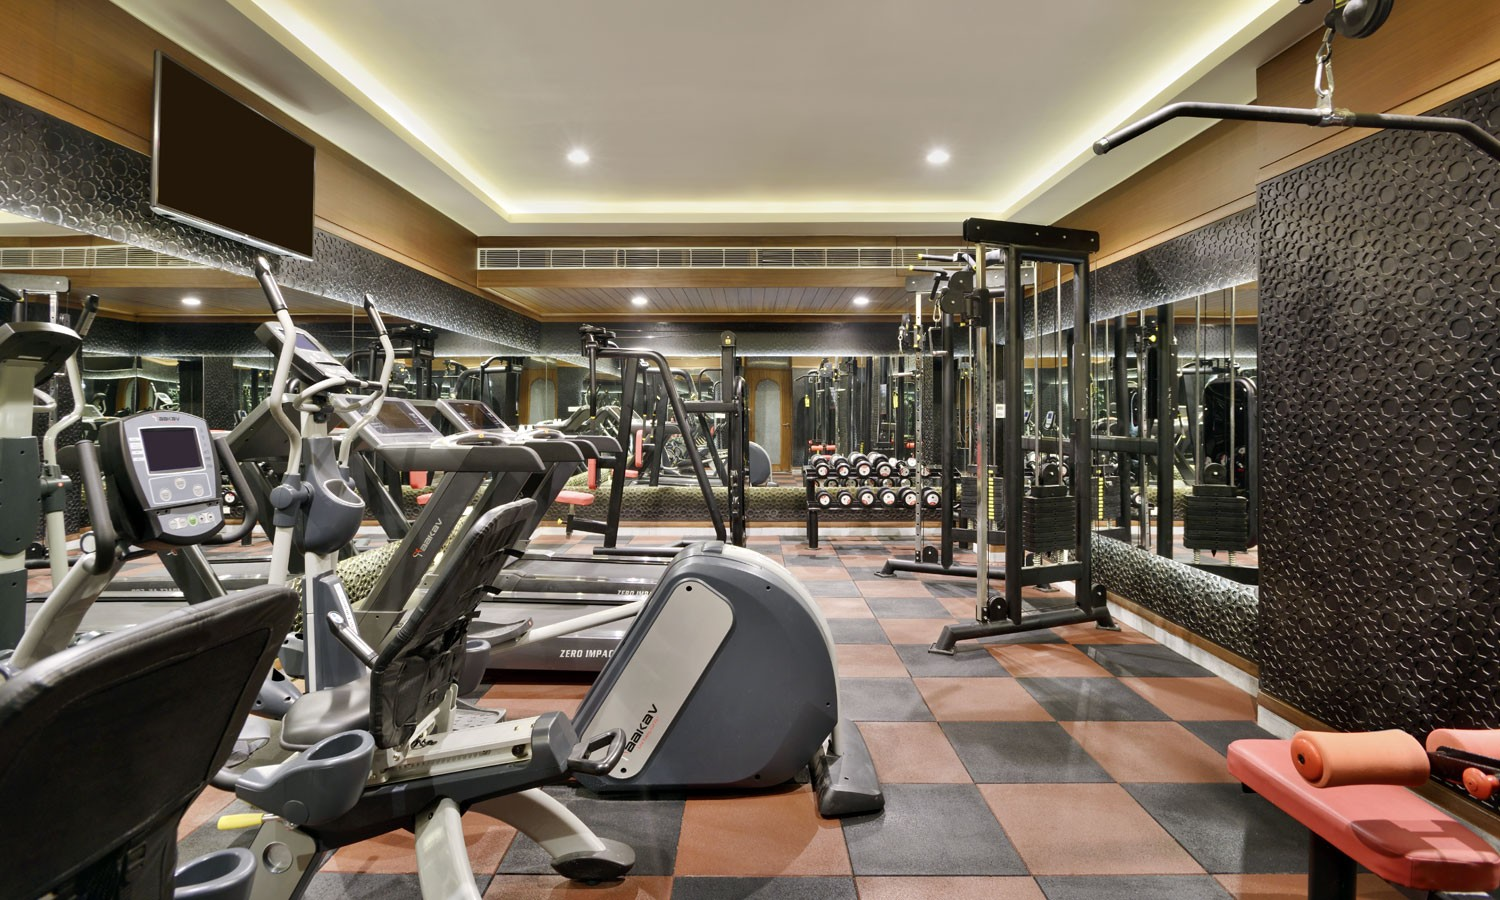 Fitness Club Radisson Hotel, Jodhpur